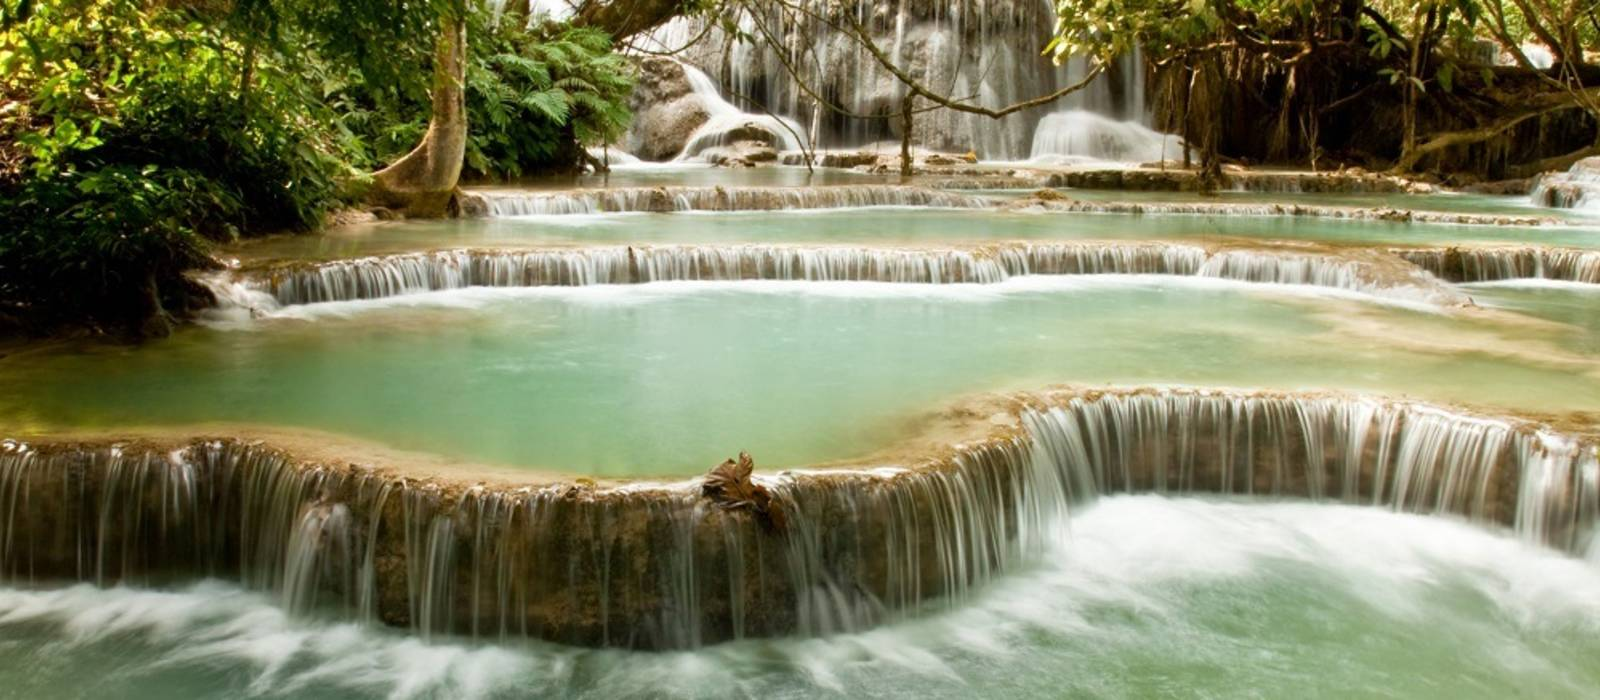 Top 10 Exotic Waterfalls You Need To See - Best Time to Visit Laos